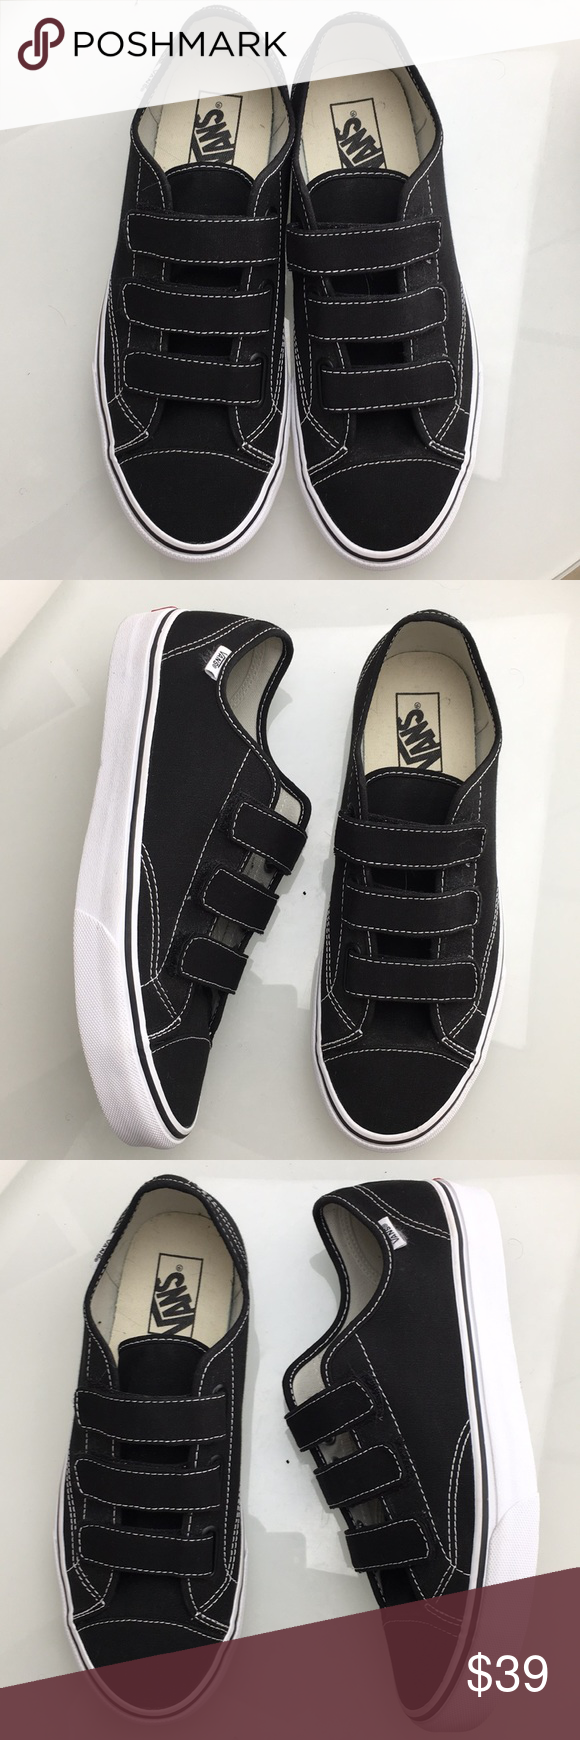 2ce3006f Vans 3 Strap Black White Sneakers Mens 10 Excellent used condition ...